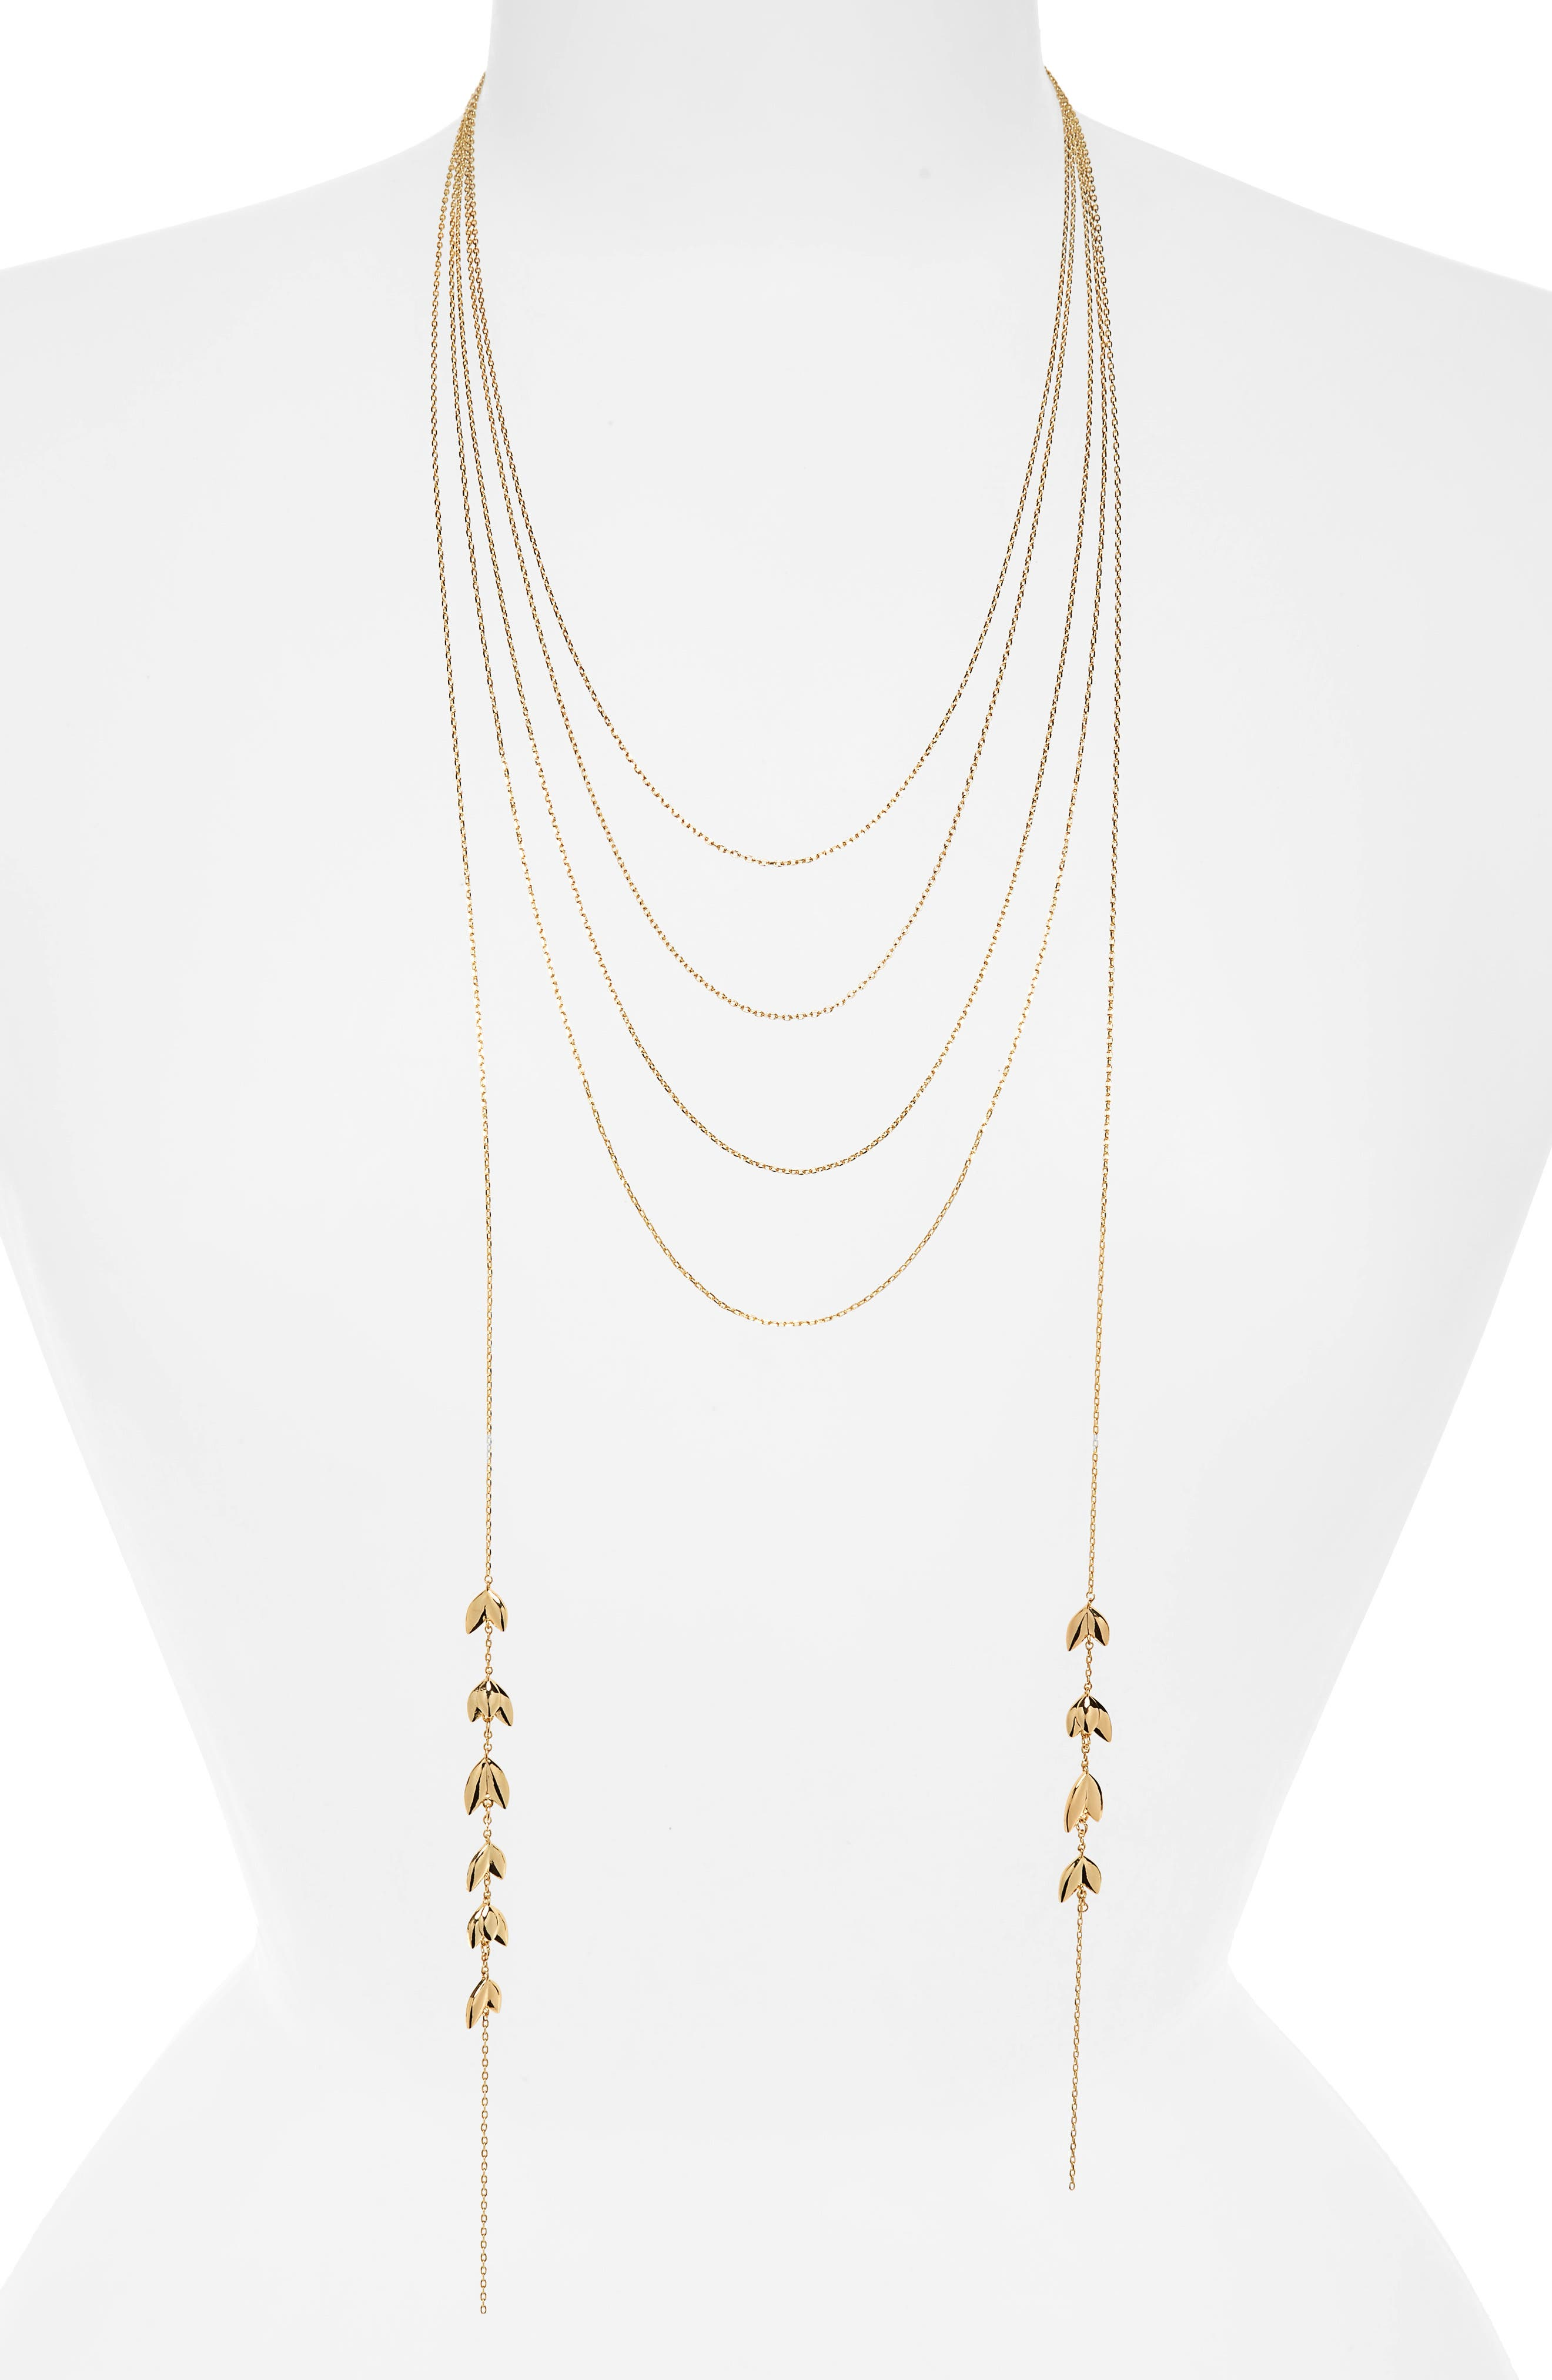 JULES SMITH Layered Lariat Necklace, Main, color, 710